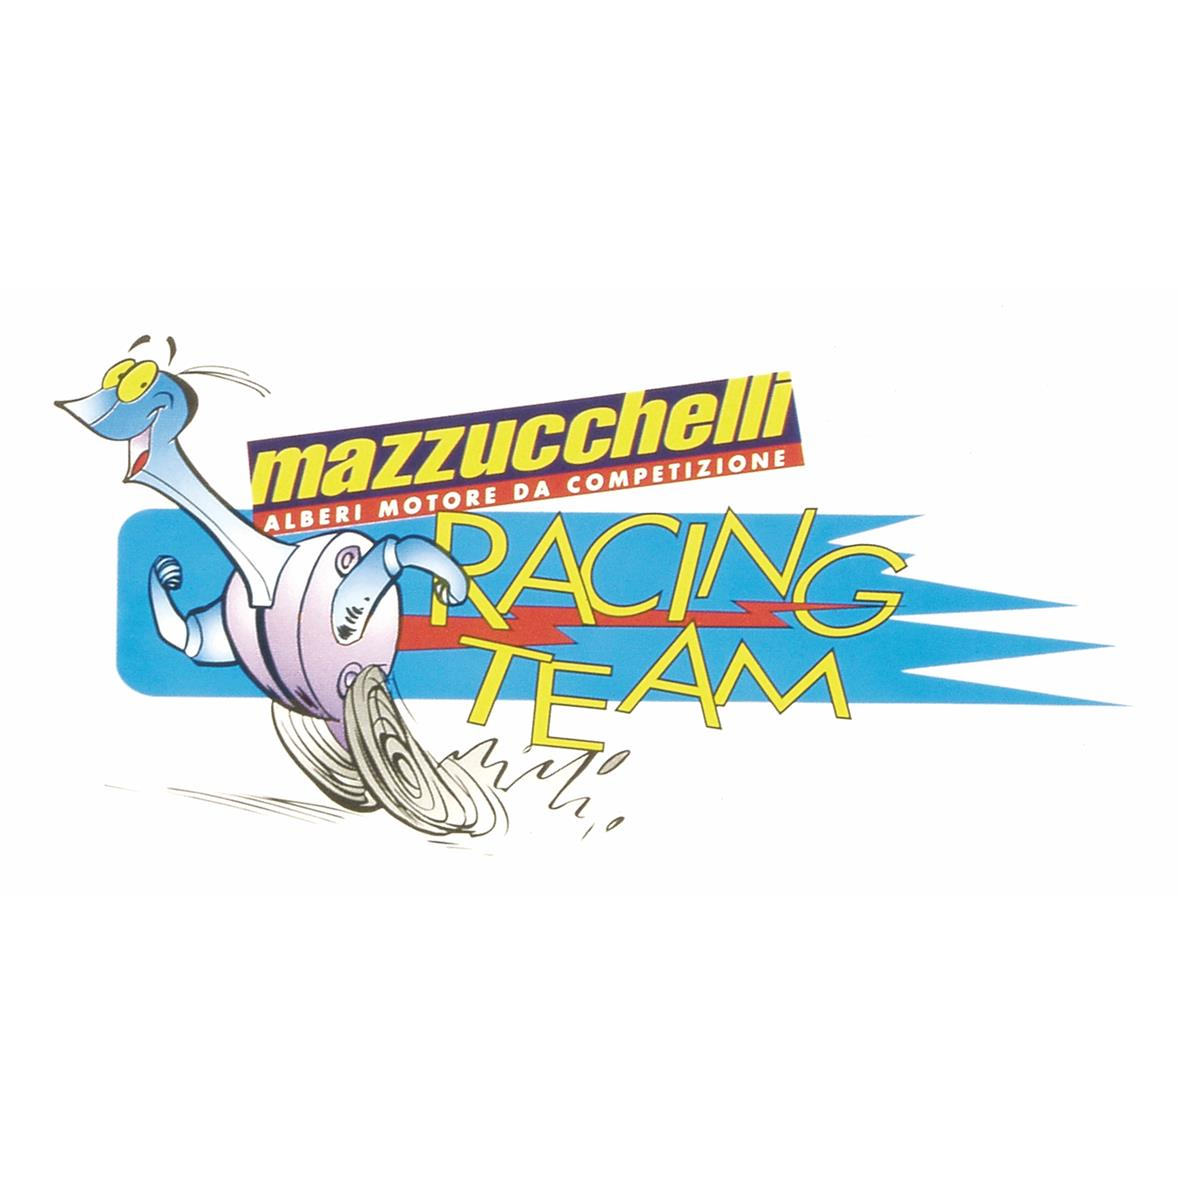 """Product Image for 'Sticker MAZZUCCHELLI """"RACING Team""""Title'"""